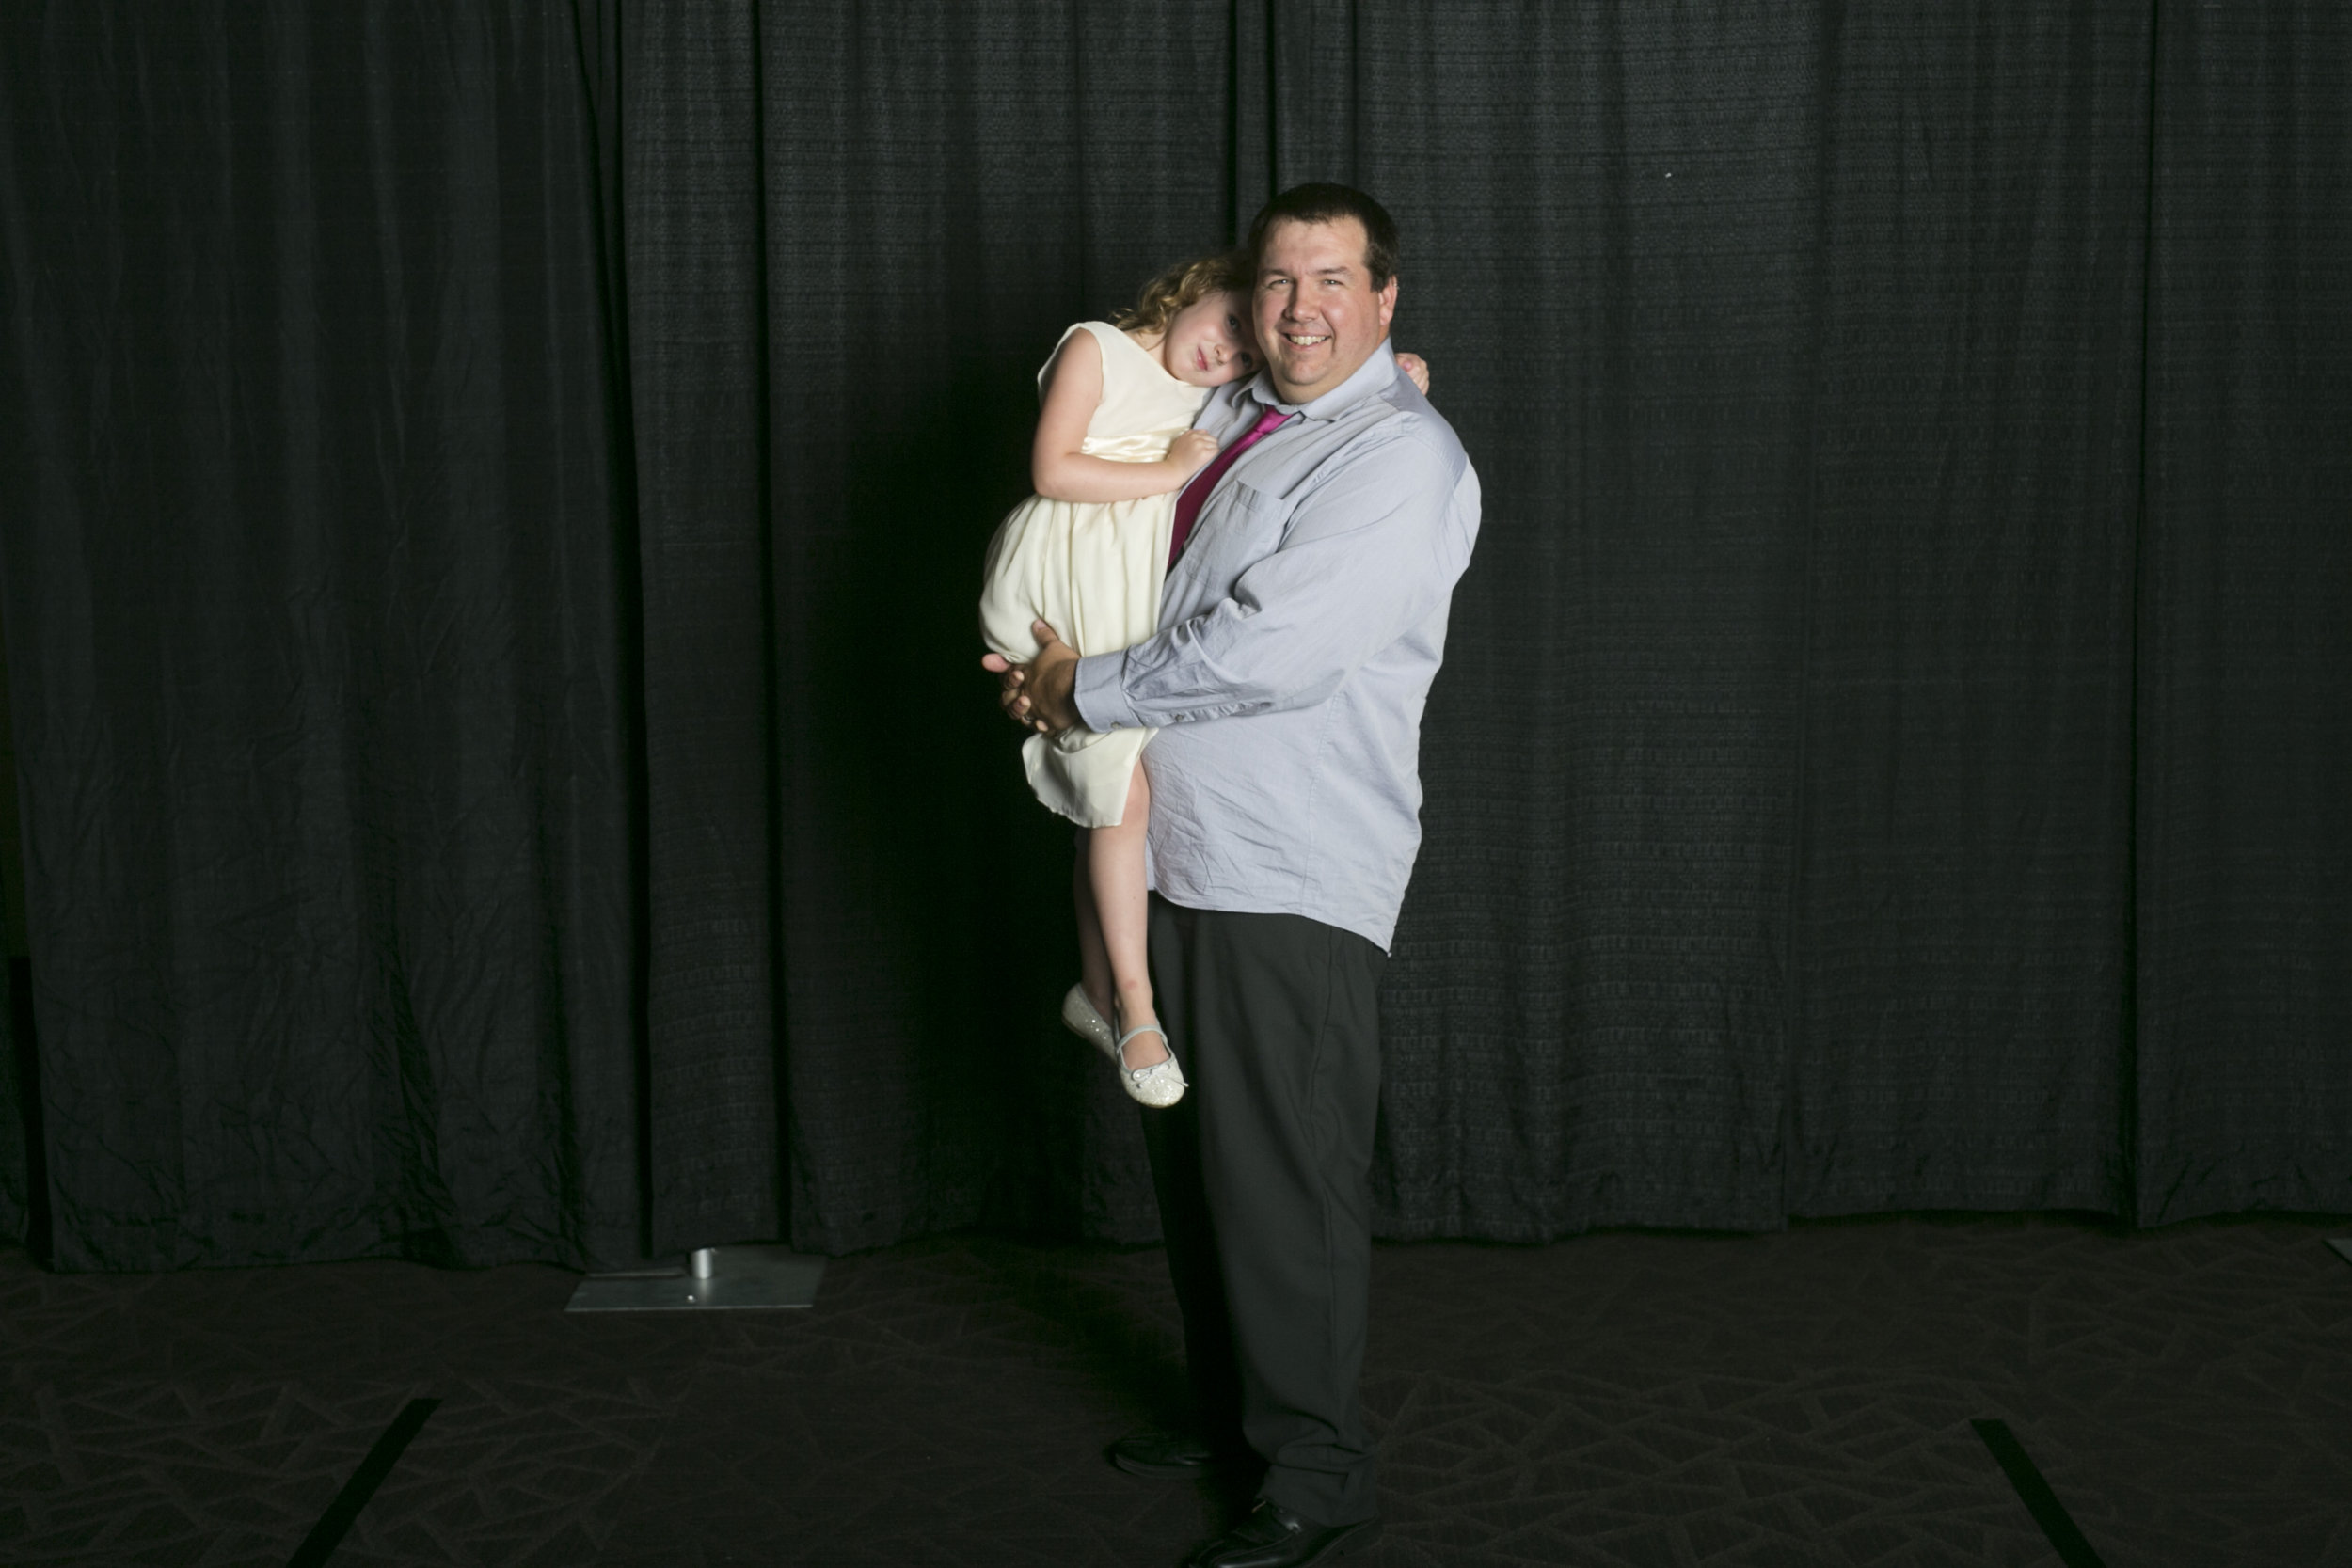 wedding photo booth-144.jpg